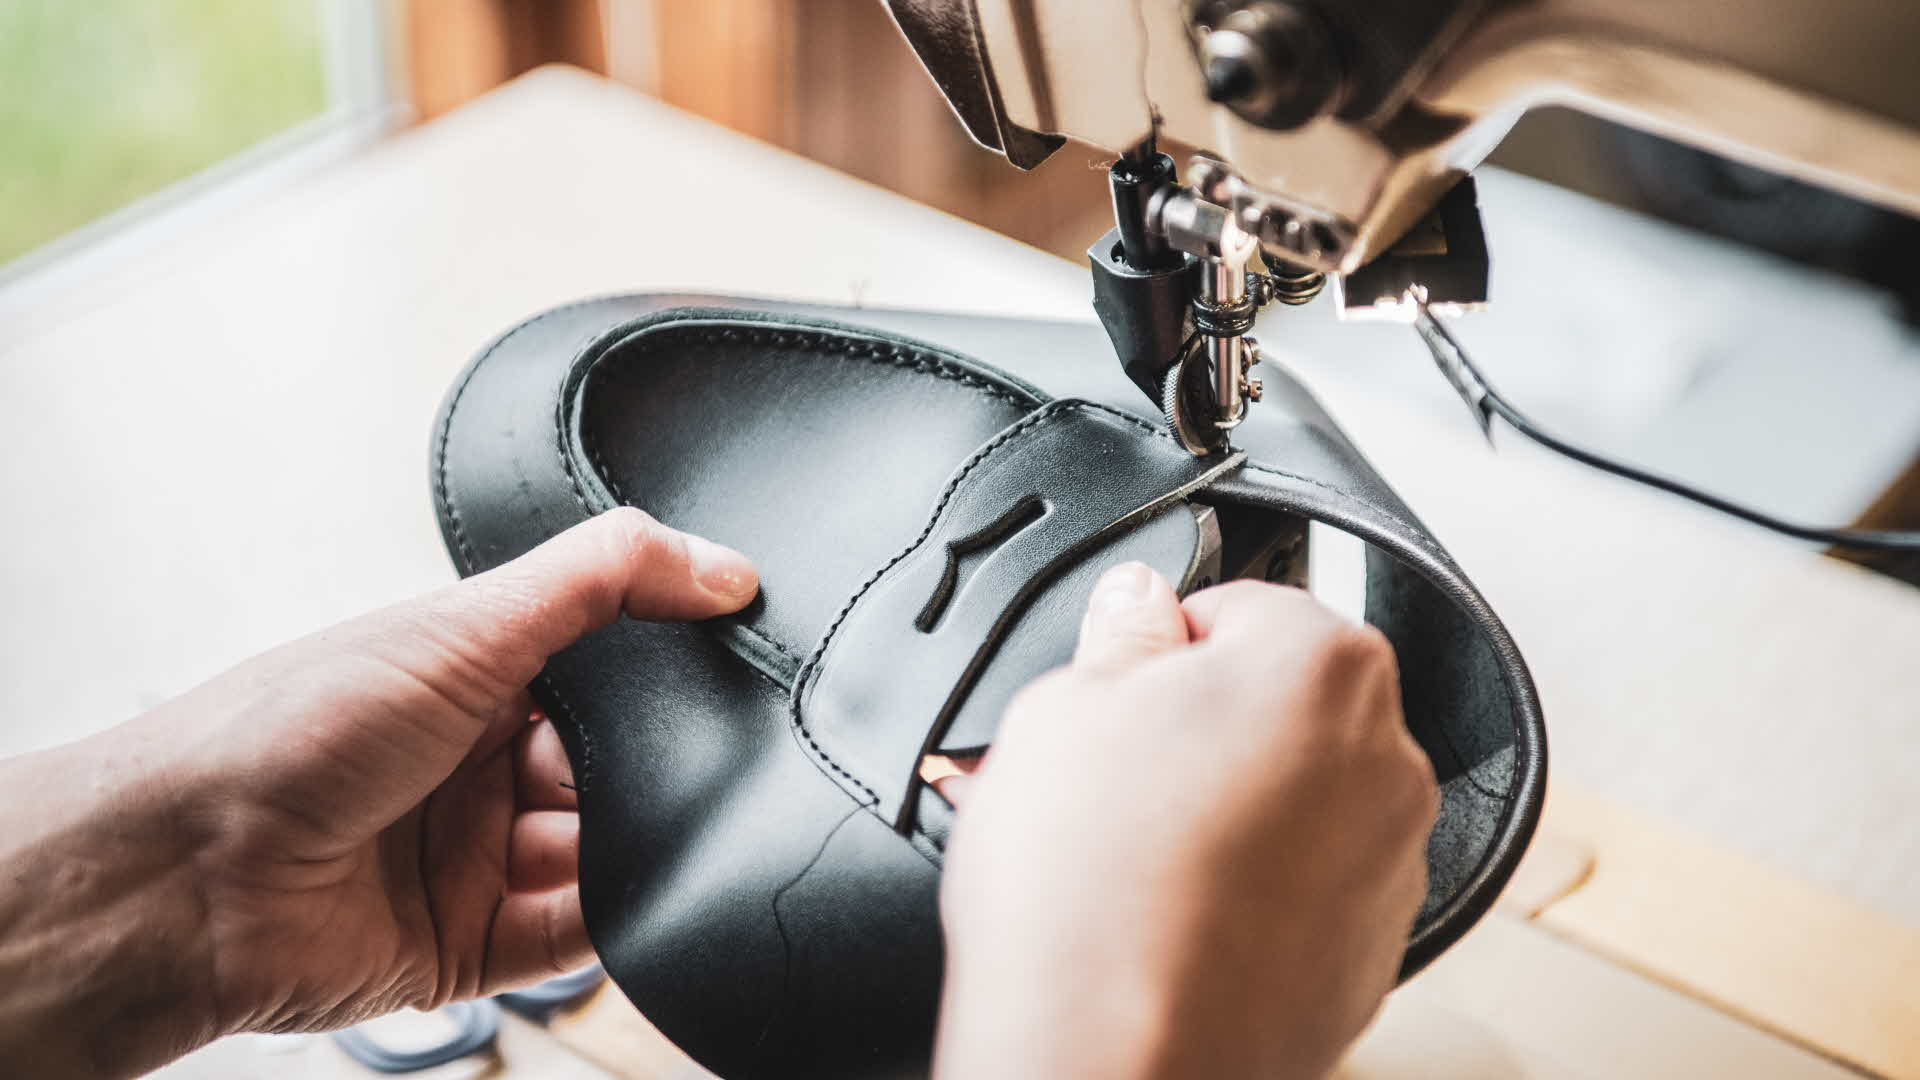 The top part of black leather Aurland shoe is being carefully stitched by worker as daylight reveal the curves of the hide